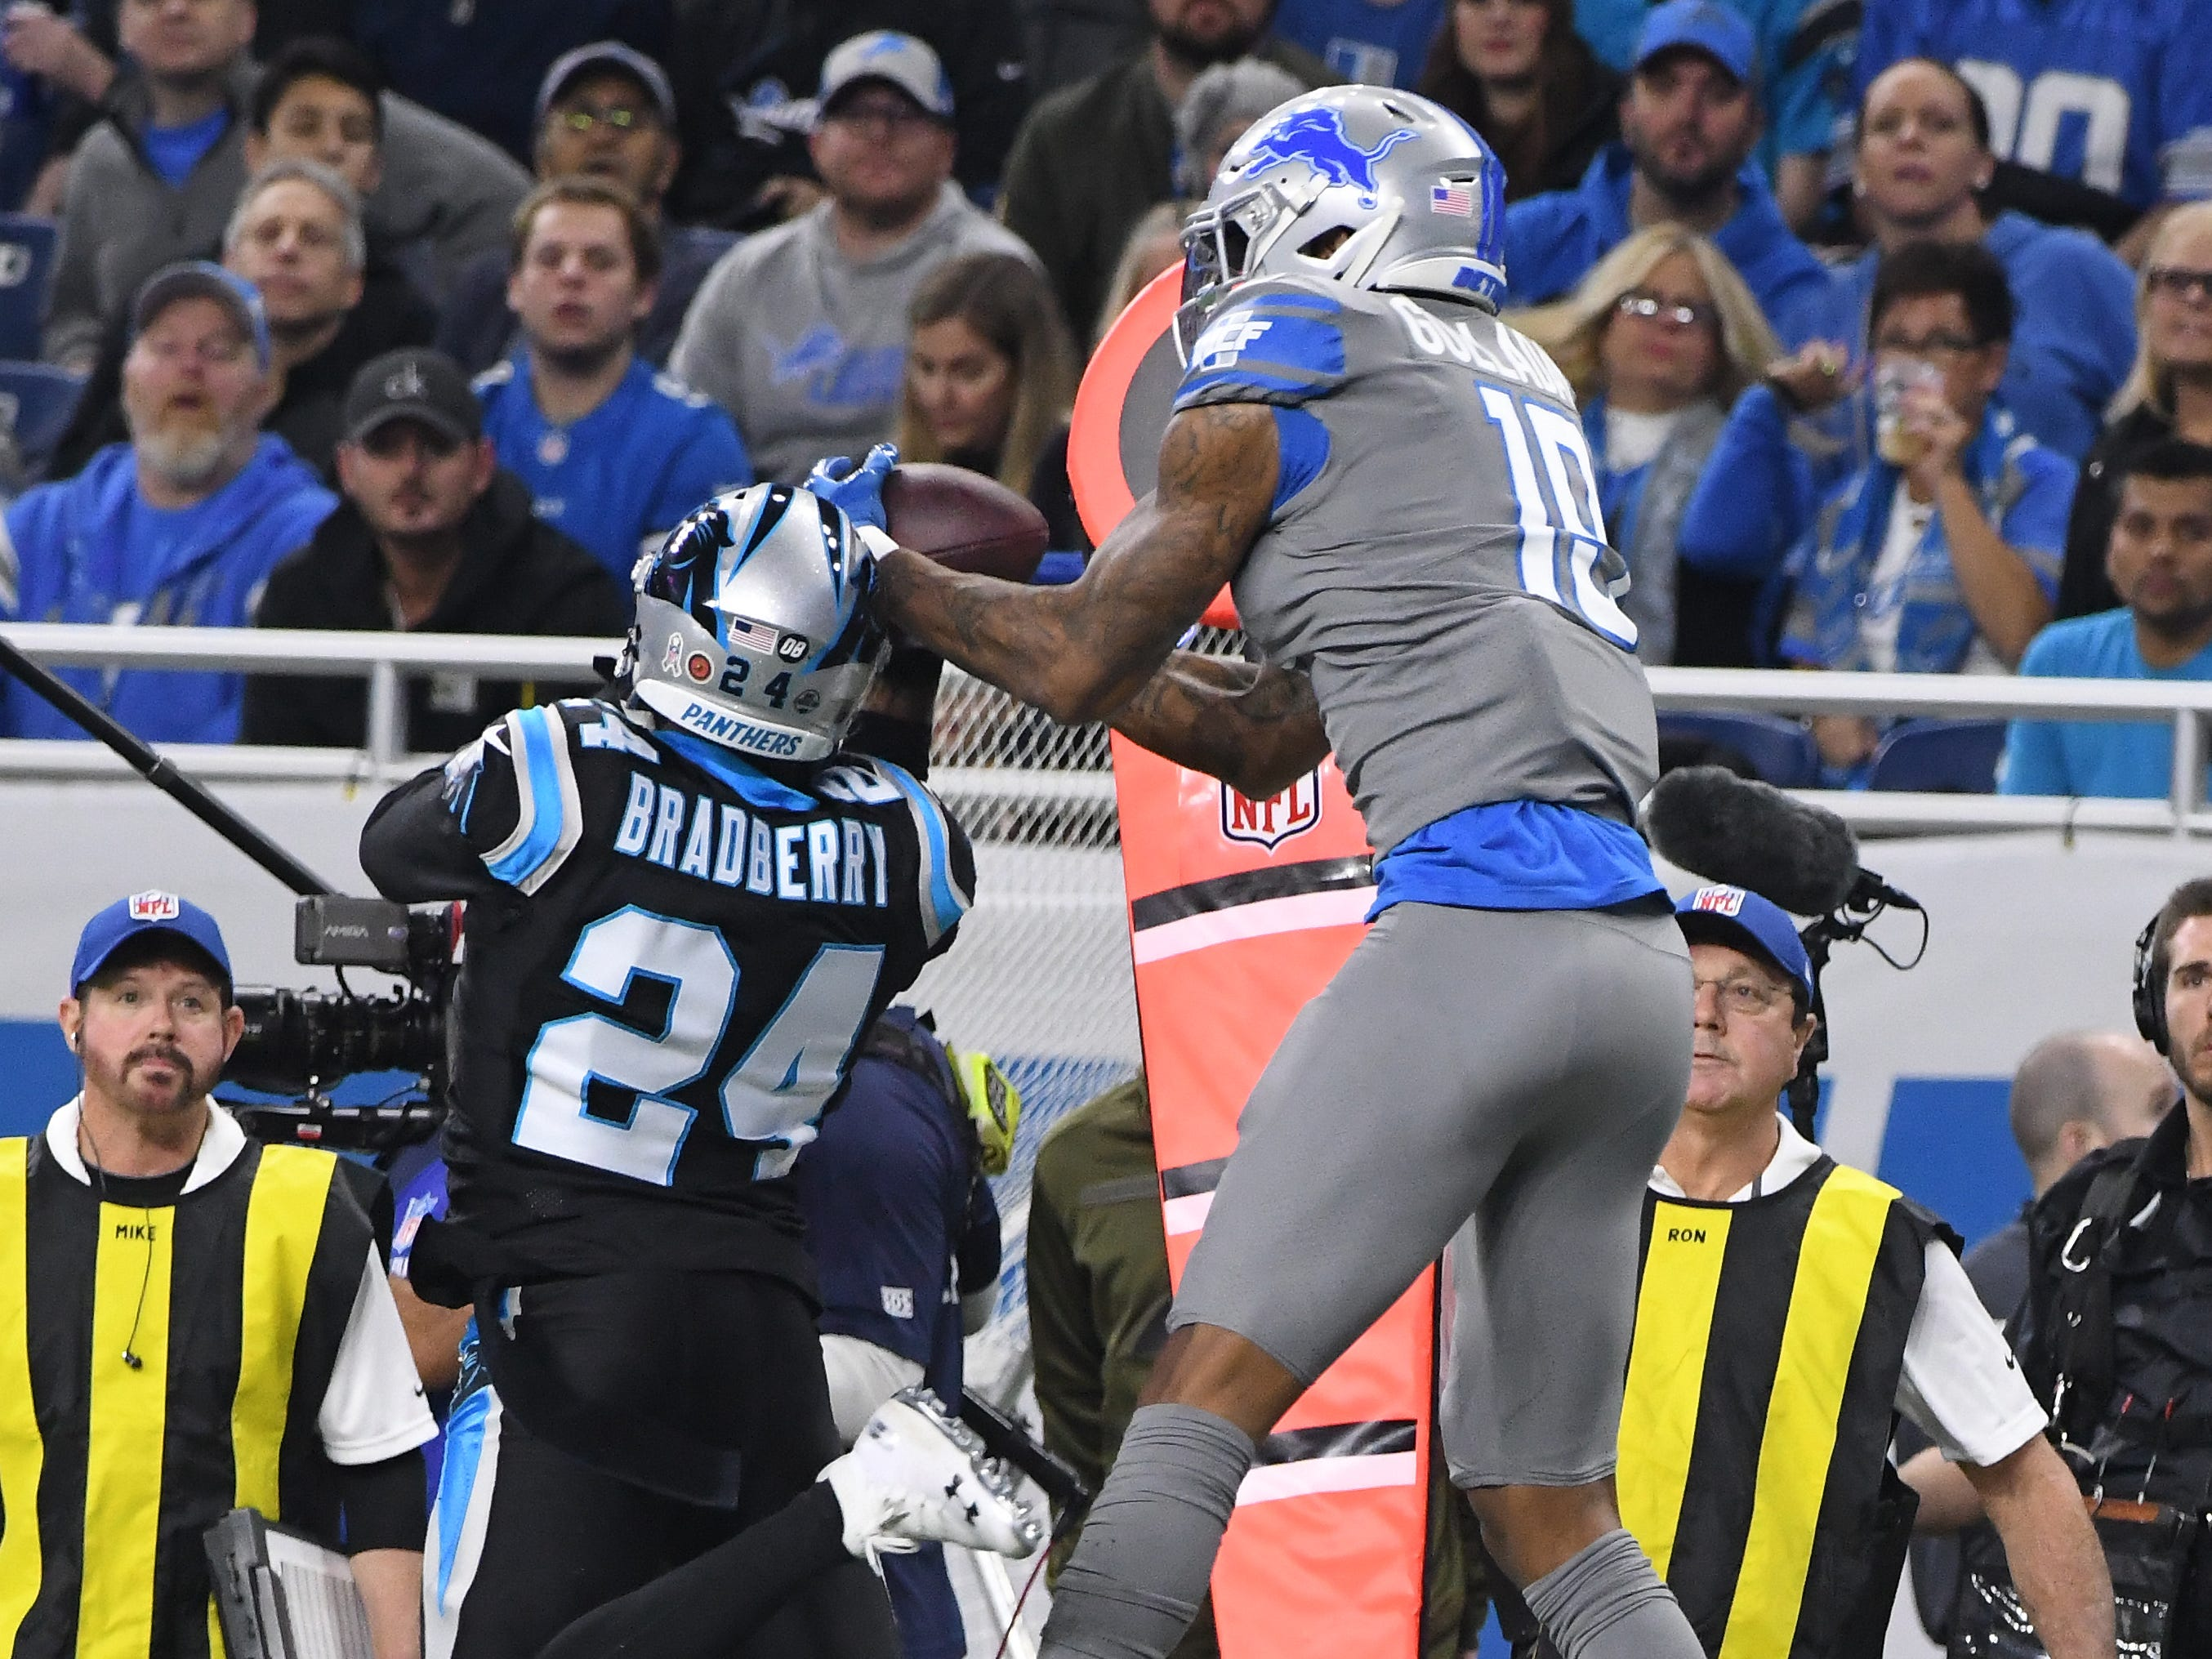 Lions wide receiver Kenny Golladay brings down a reception over Panthers' James Bradberry in the first quarter.